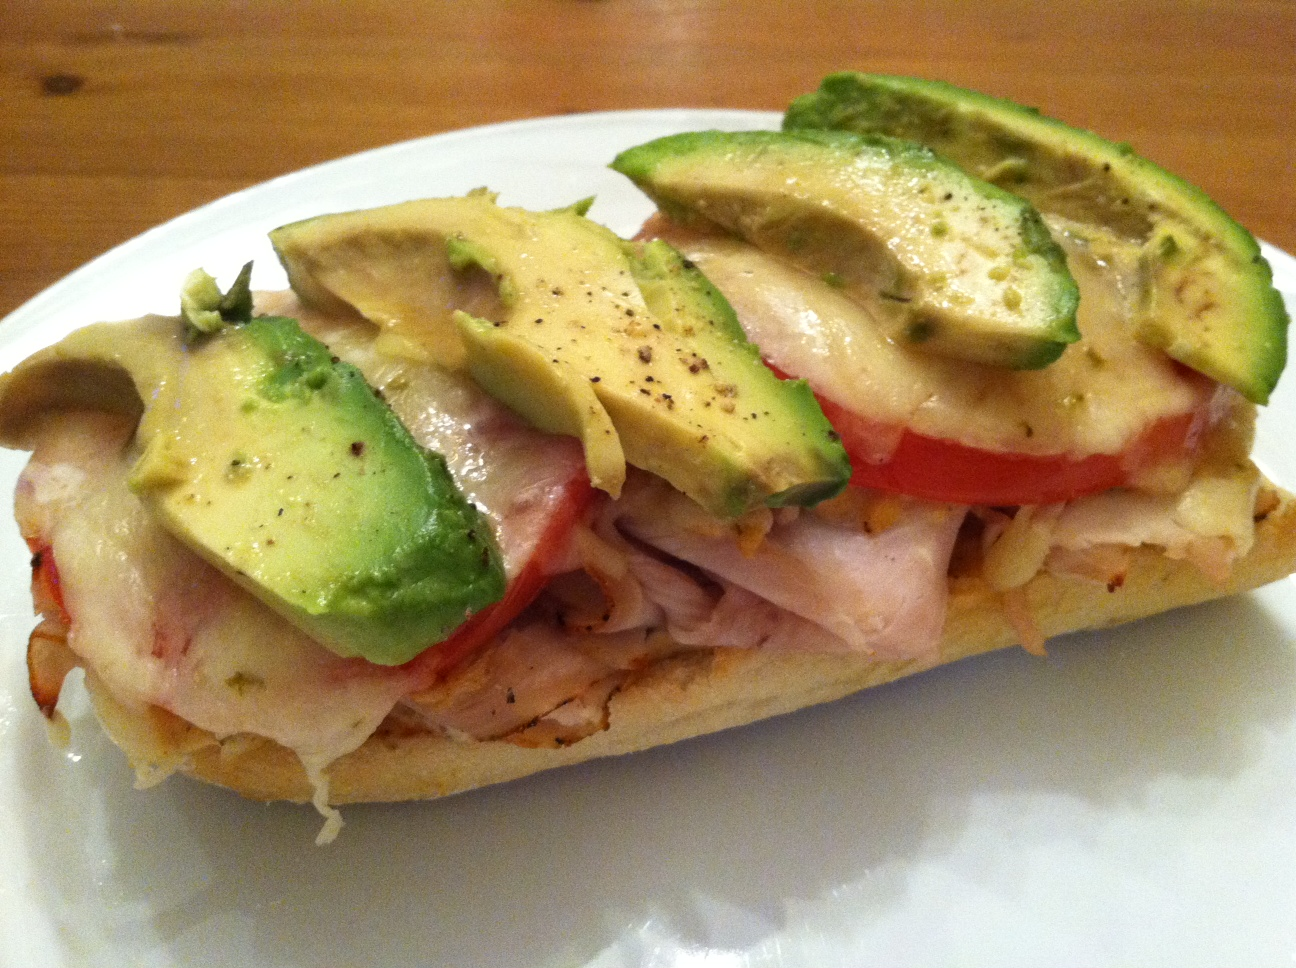 ... Taste of Home Cooking: Southwestern Ranch Open-Faced Turkey Sandwiches